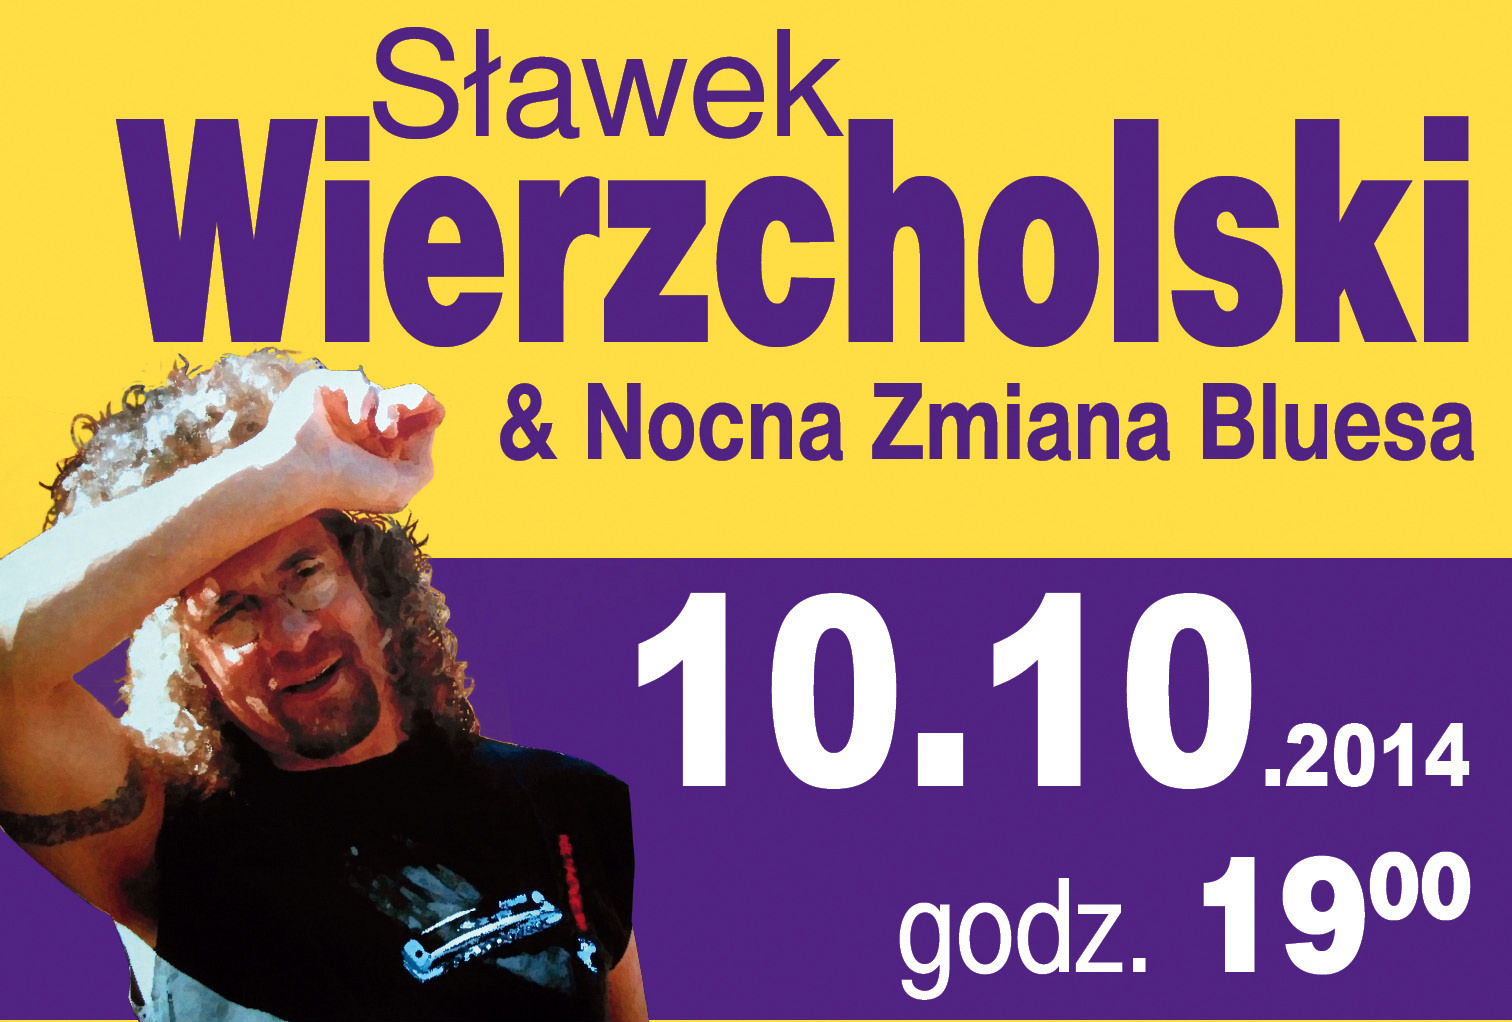 wierzcholski_2014_POP_UP